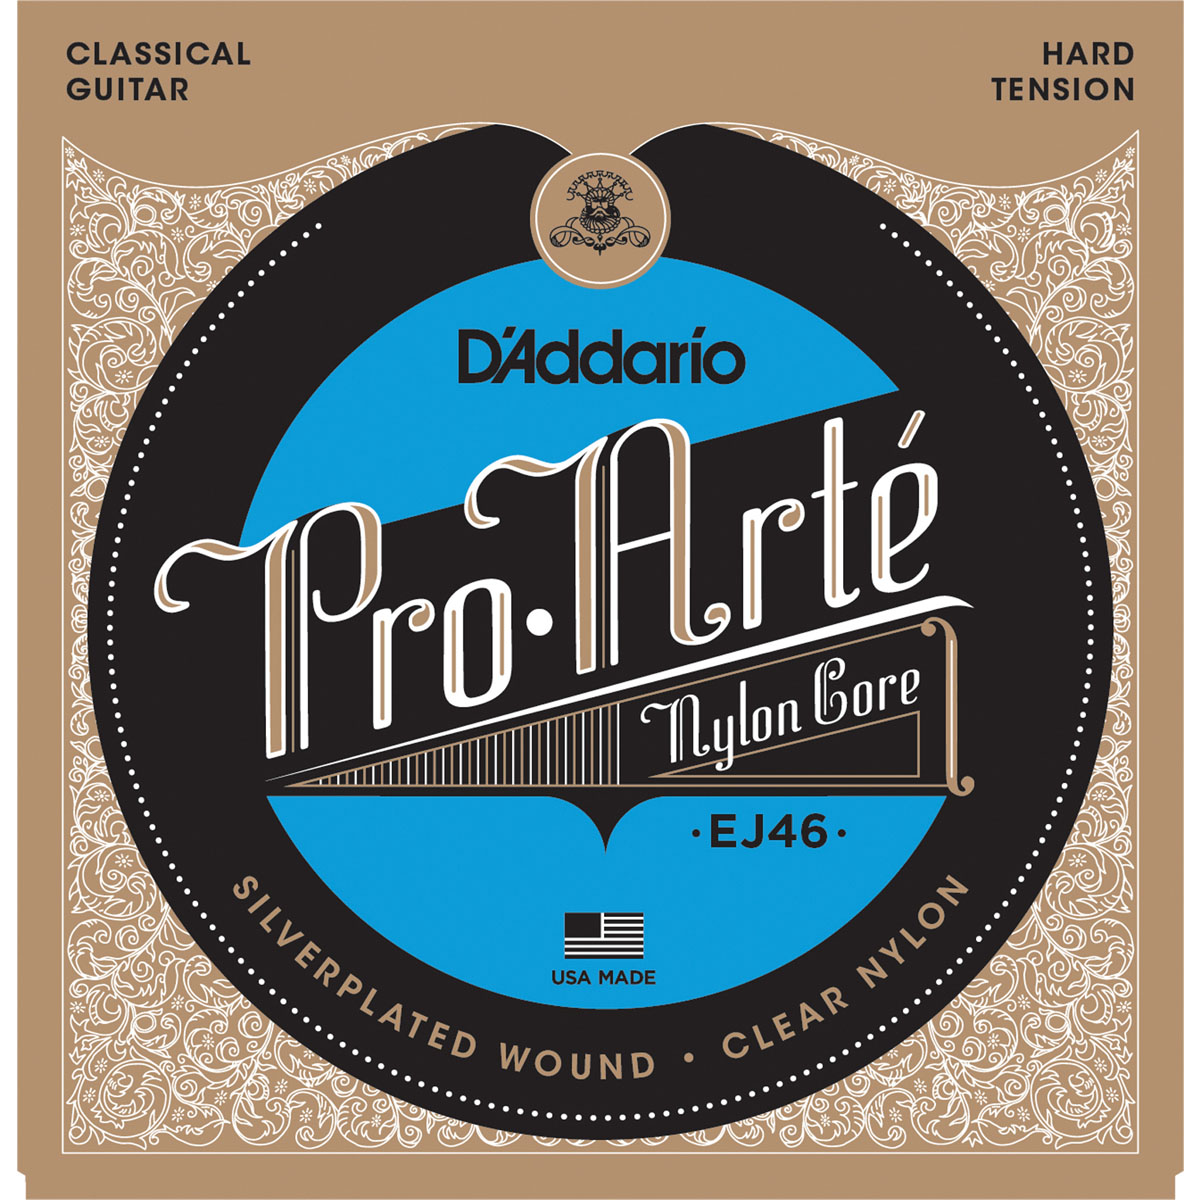 D'Addario EJ46 Classic Guitar Strings